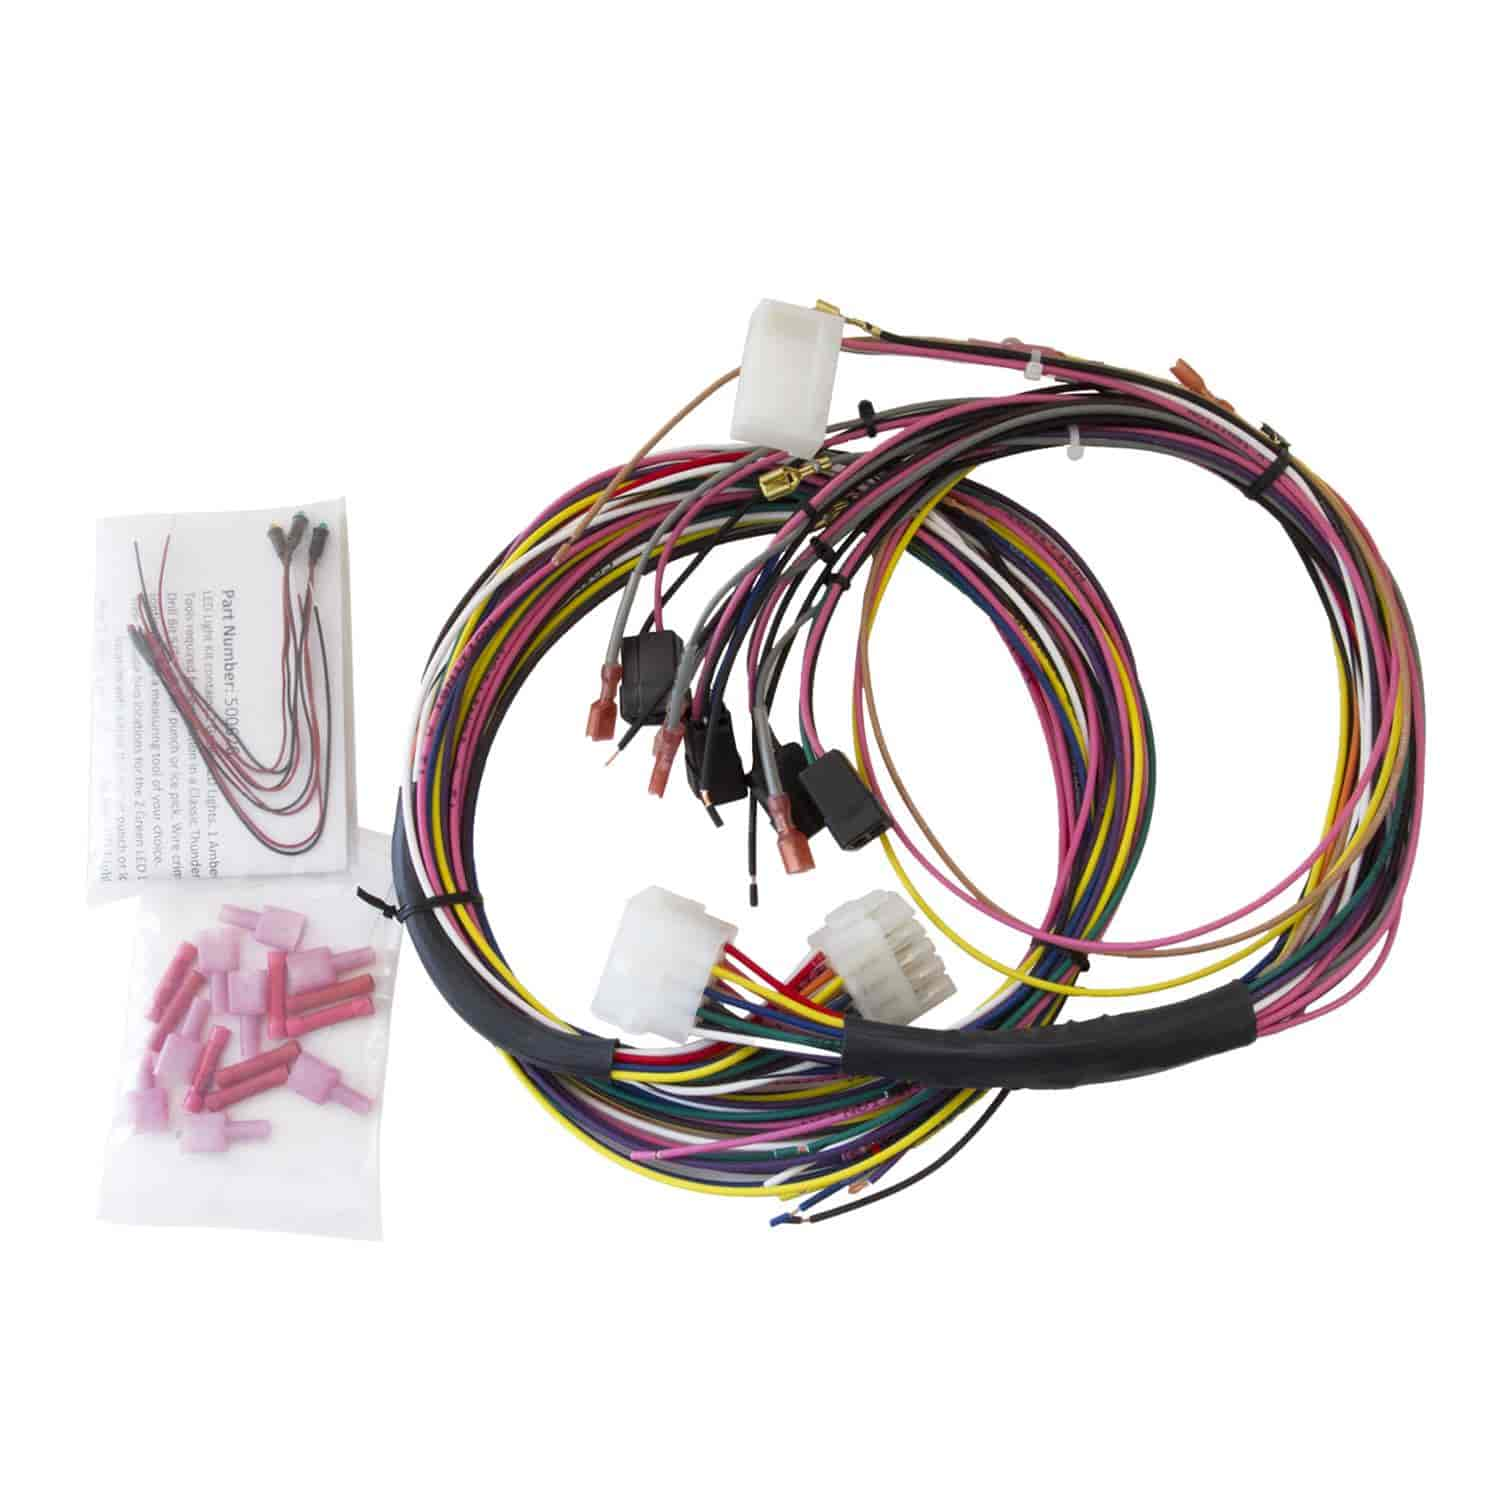 105 2198 auto meter 2198 replacement wiring harness universal jegs VW Wiring Harness Kits at creativeand.co